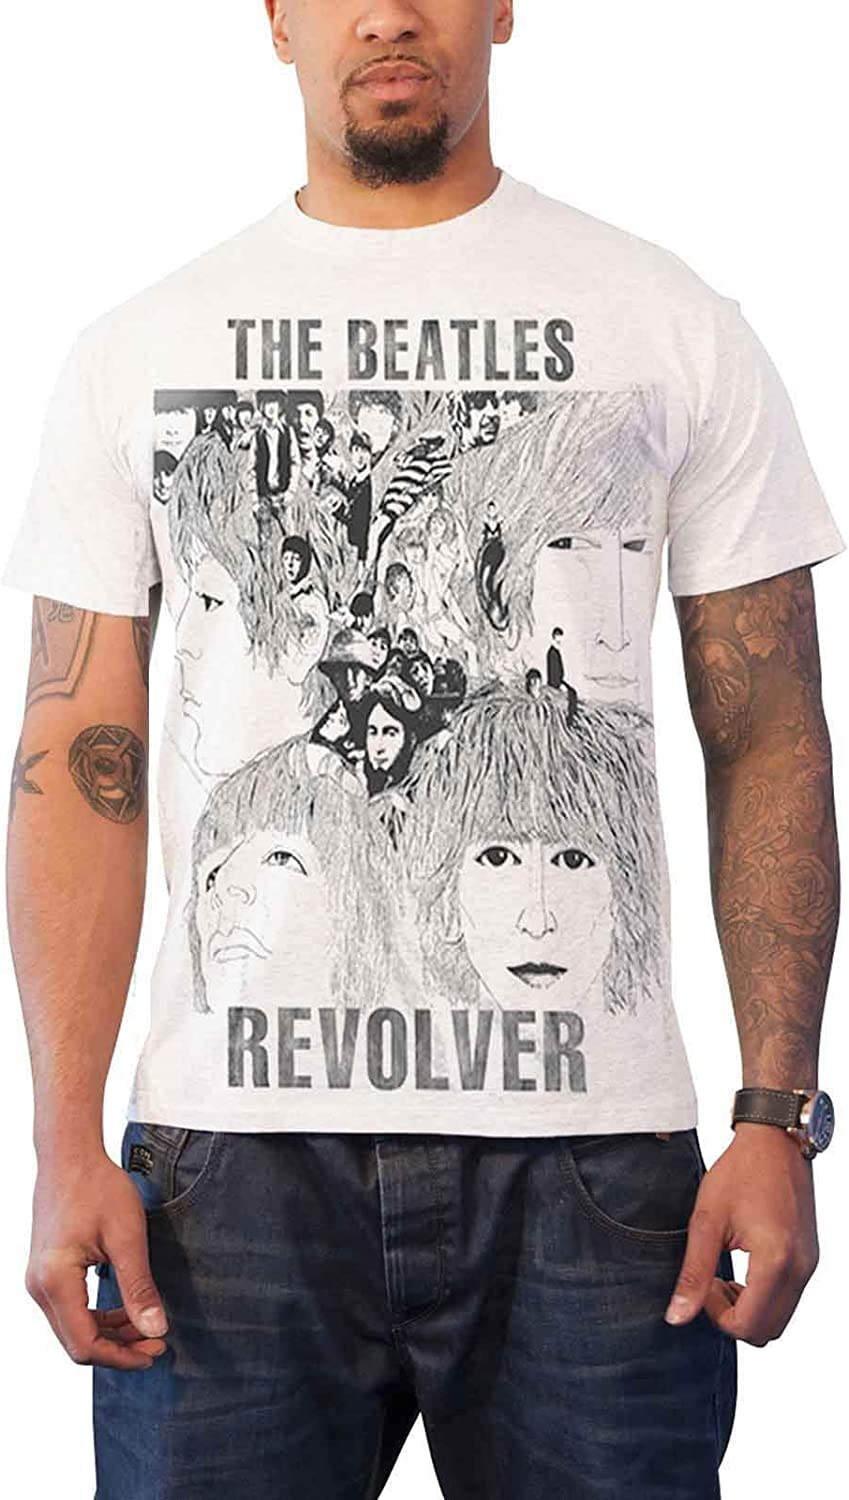 The Beatles T Shirt Revolver Album Cover Band Logo Official Mens New White Size